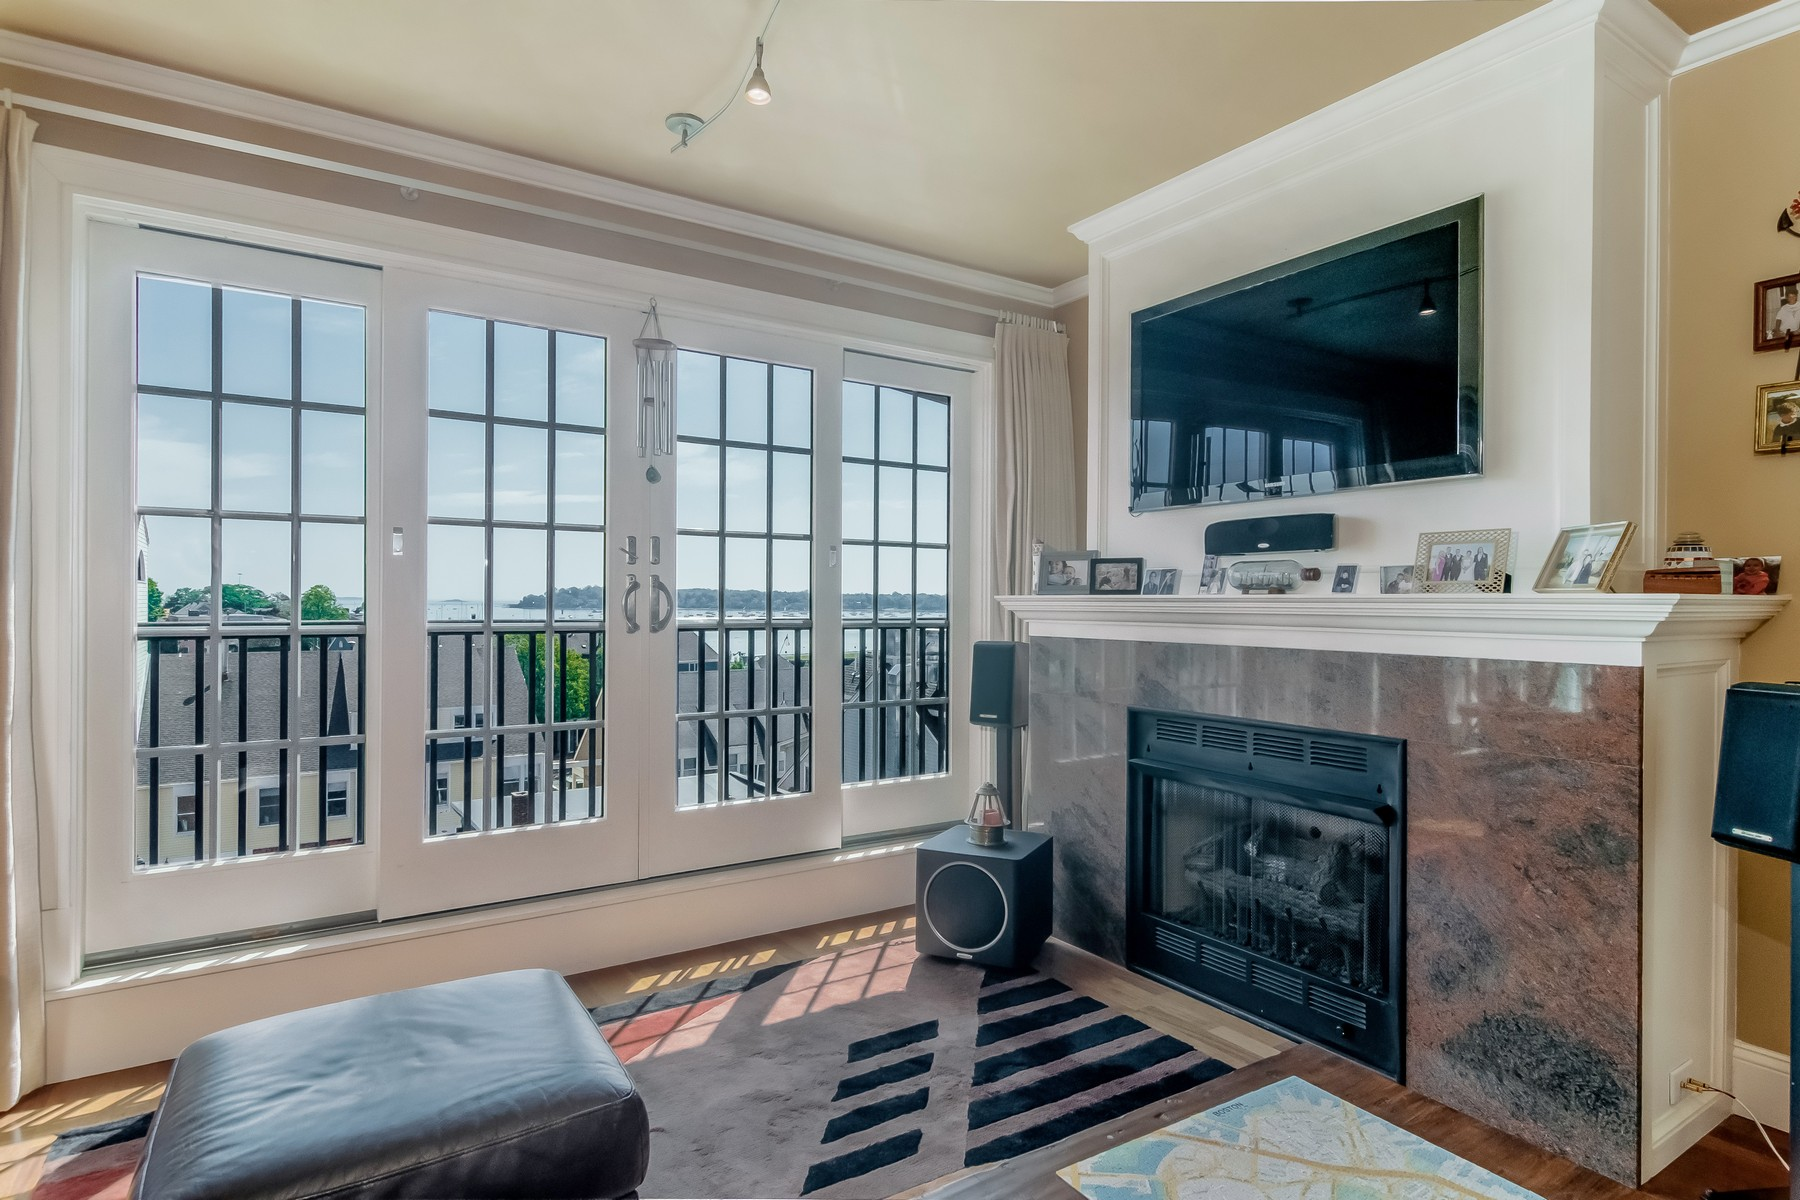 Additional photo for property listing at Luxury Harbor View Condo 225 Derby Street Unit 503 Salem, Massachusetts 01970 United States